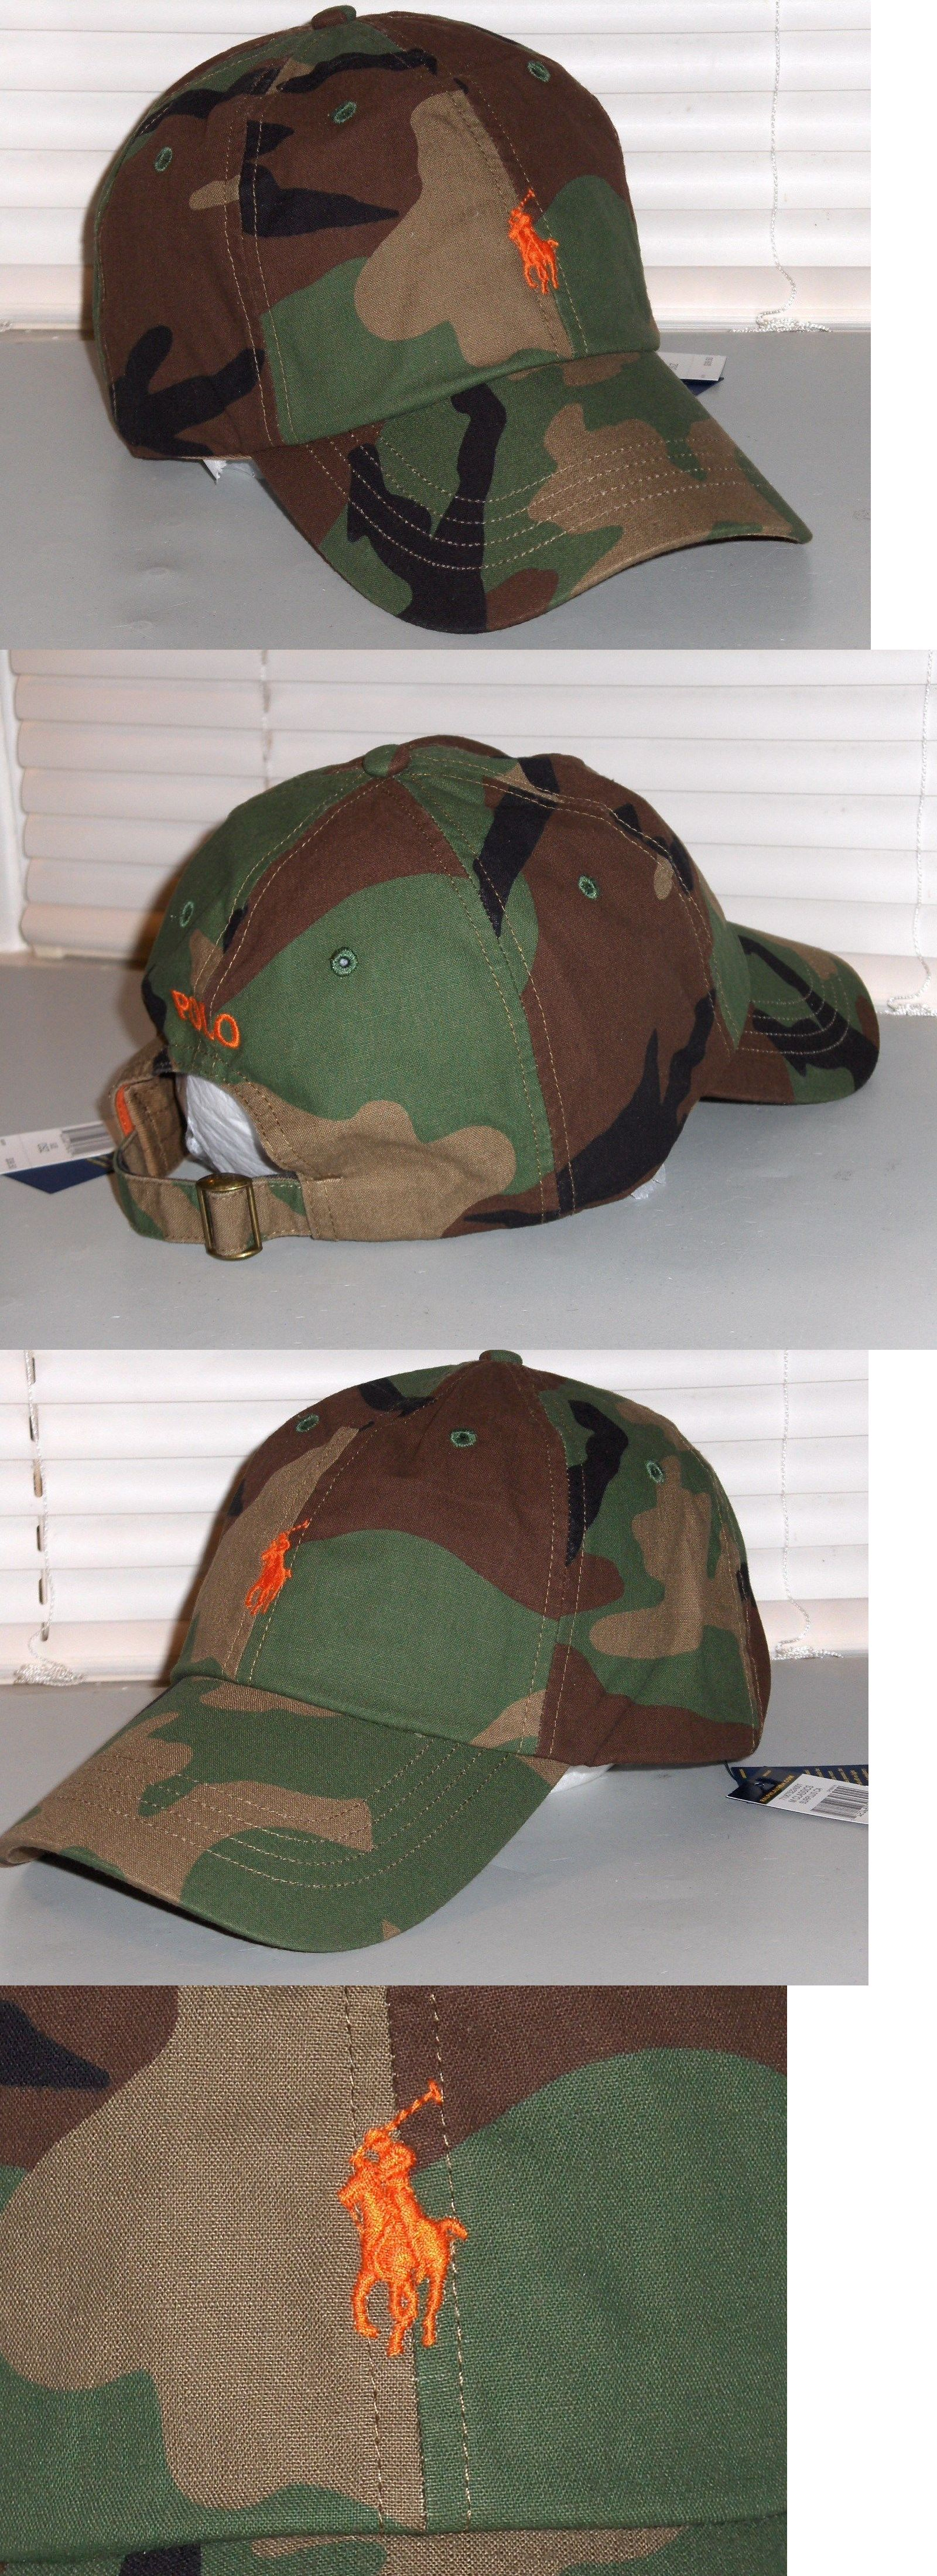 Hats 52365  Polo Ralph Lauren Men S Camo Cotton Hat f6abb6a8512